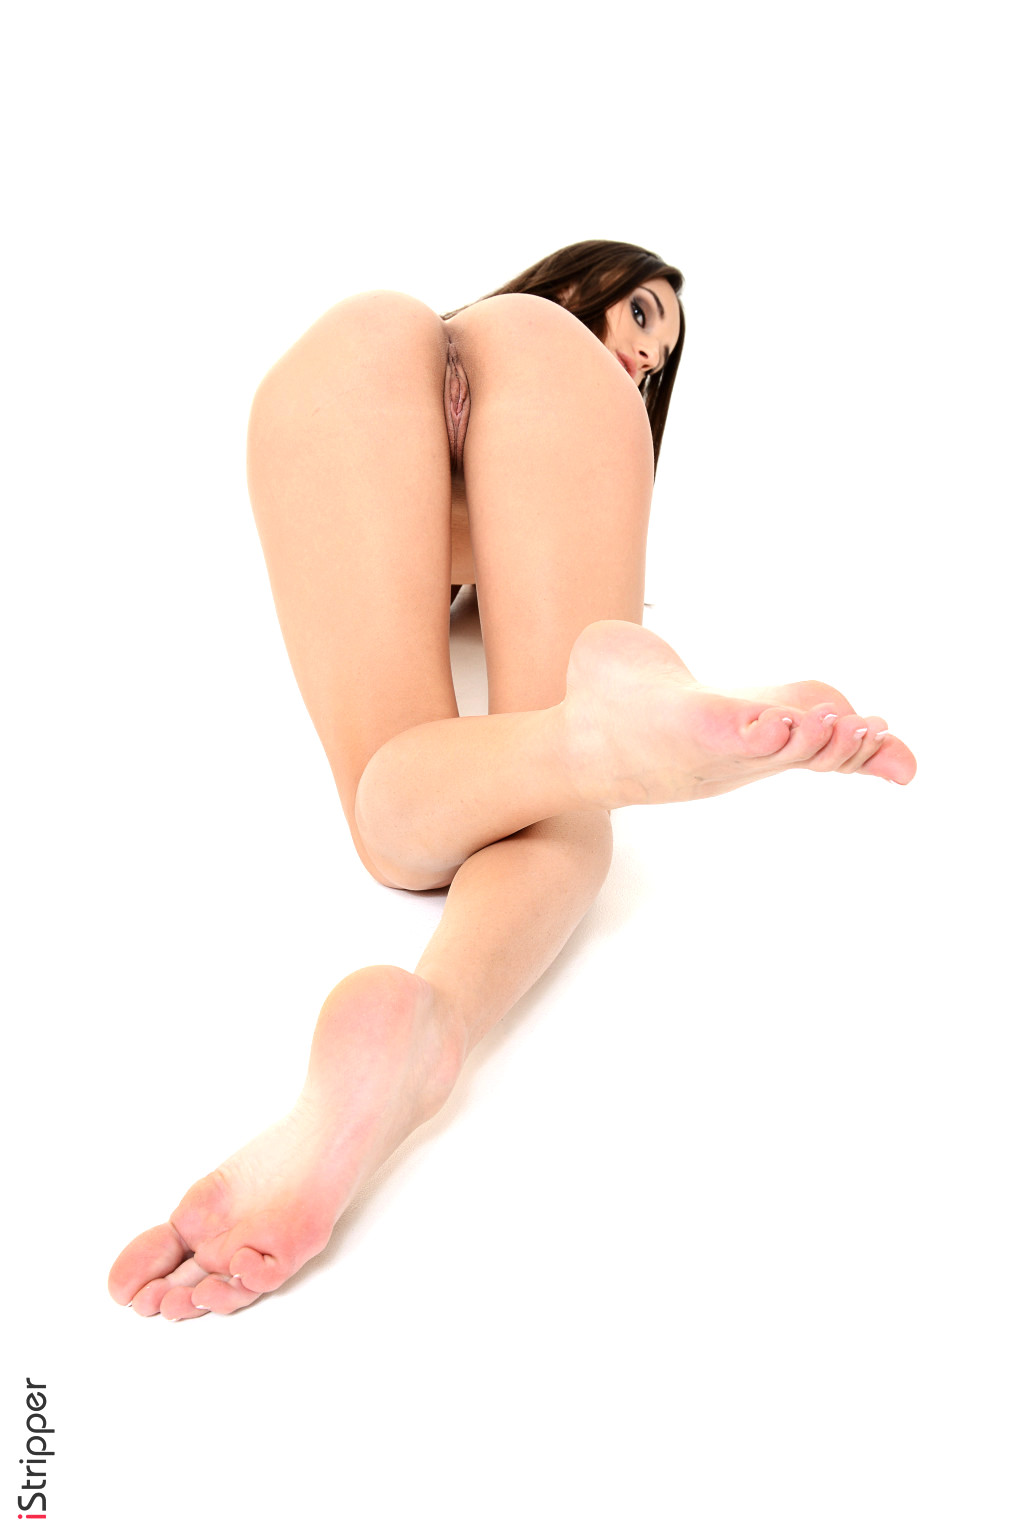 Petite babe in stockings drilling her pussy 7